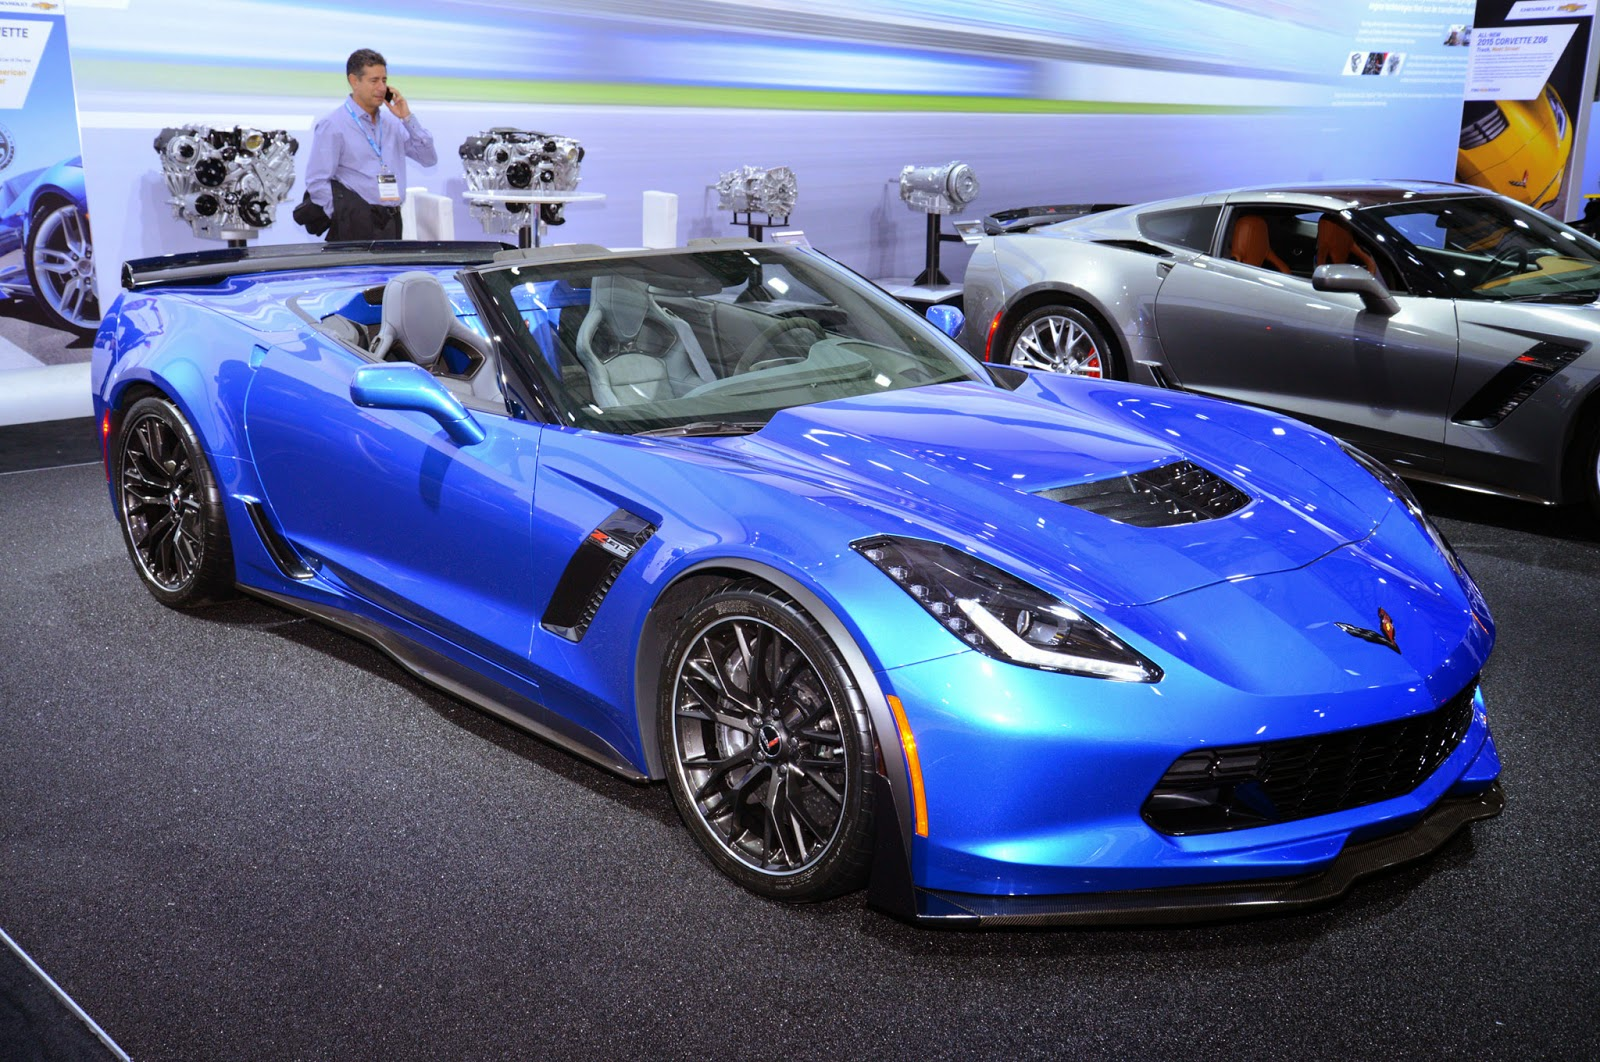 2016 Corvette Z07 Price >> 2016 Corvette Z07 Specs Price Automotive Dealer